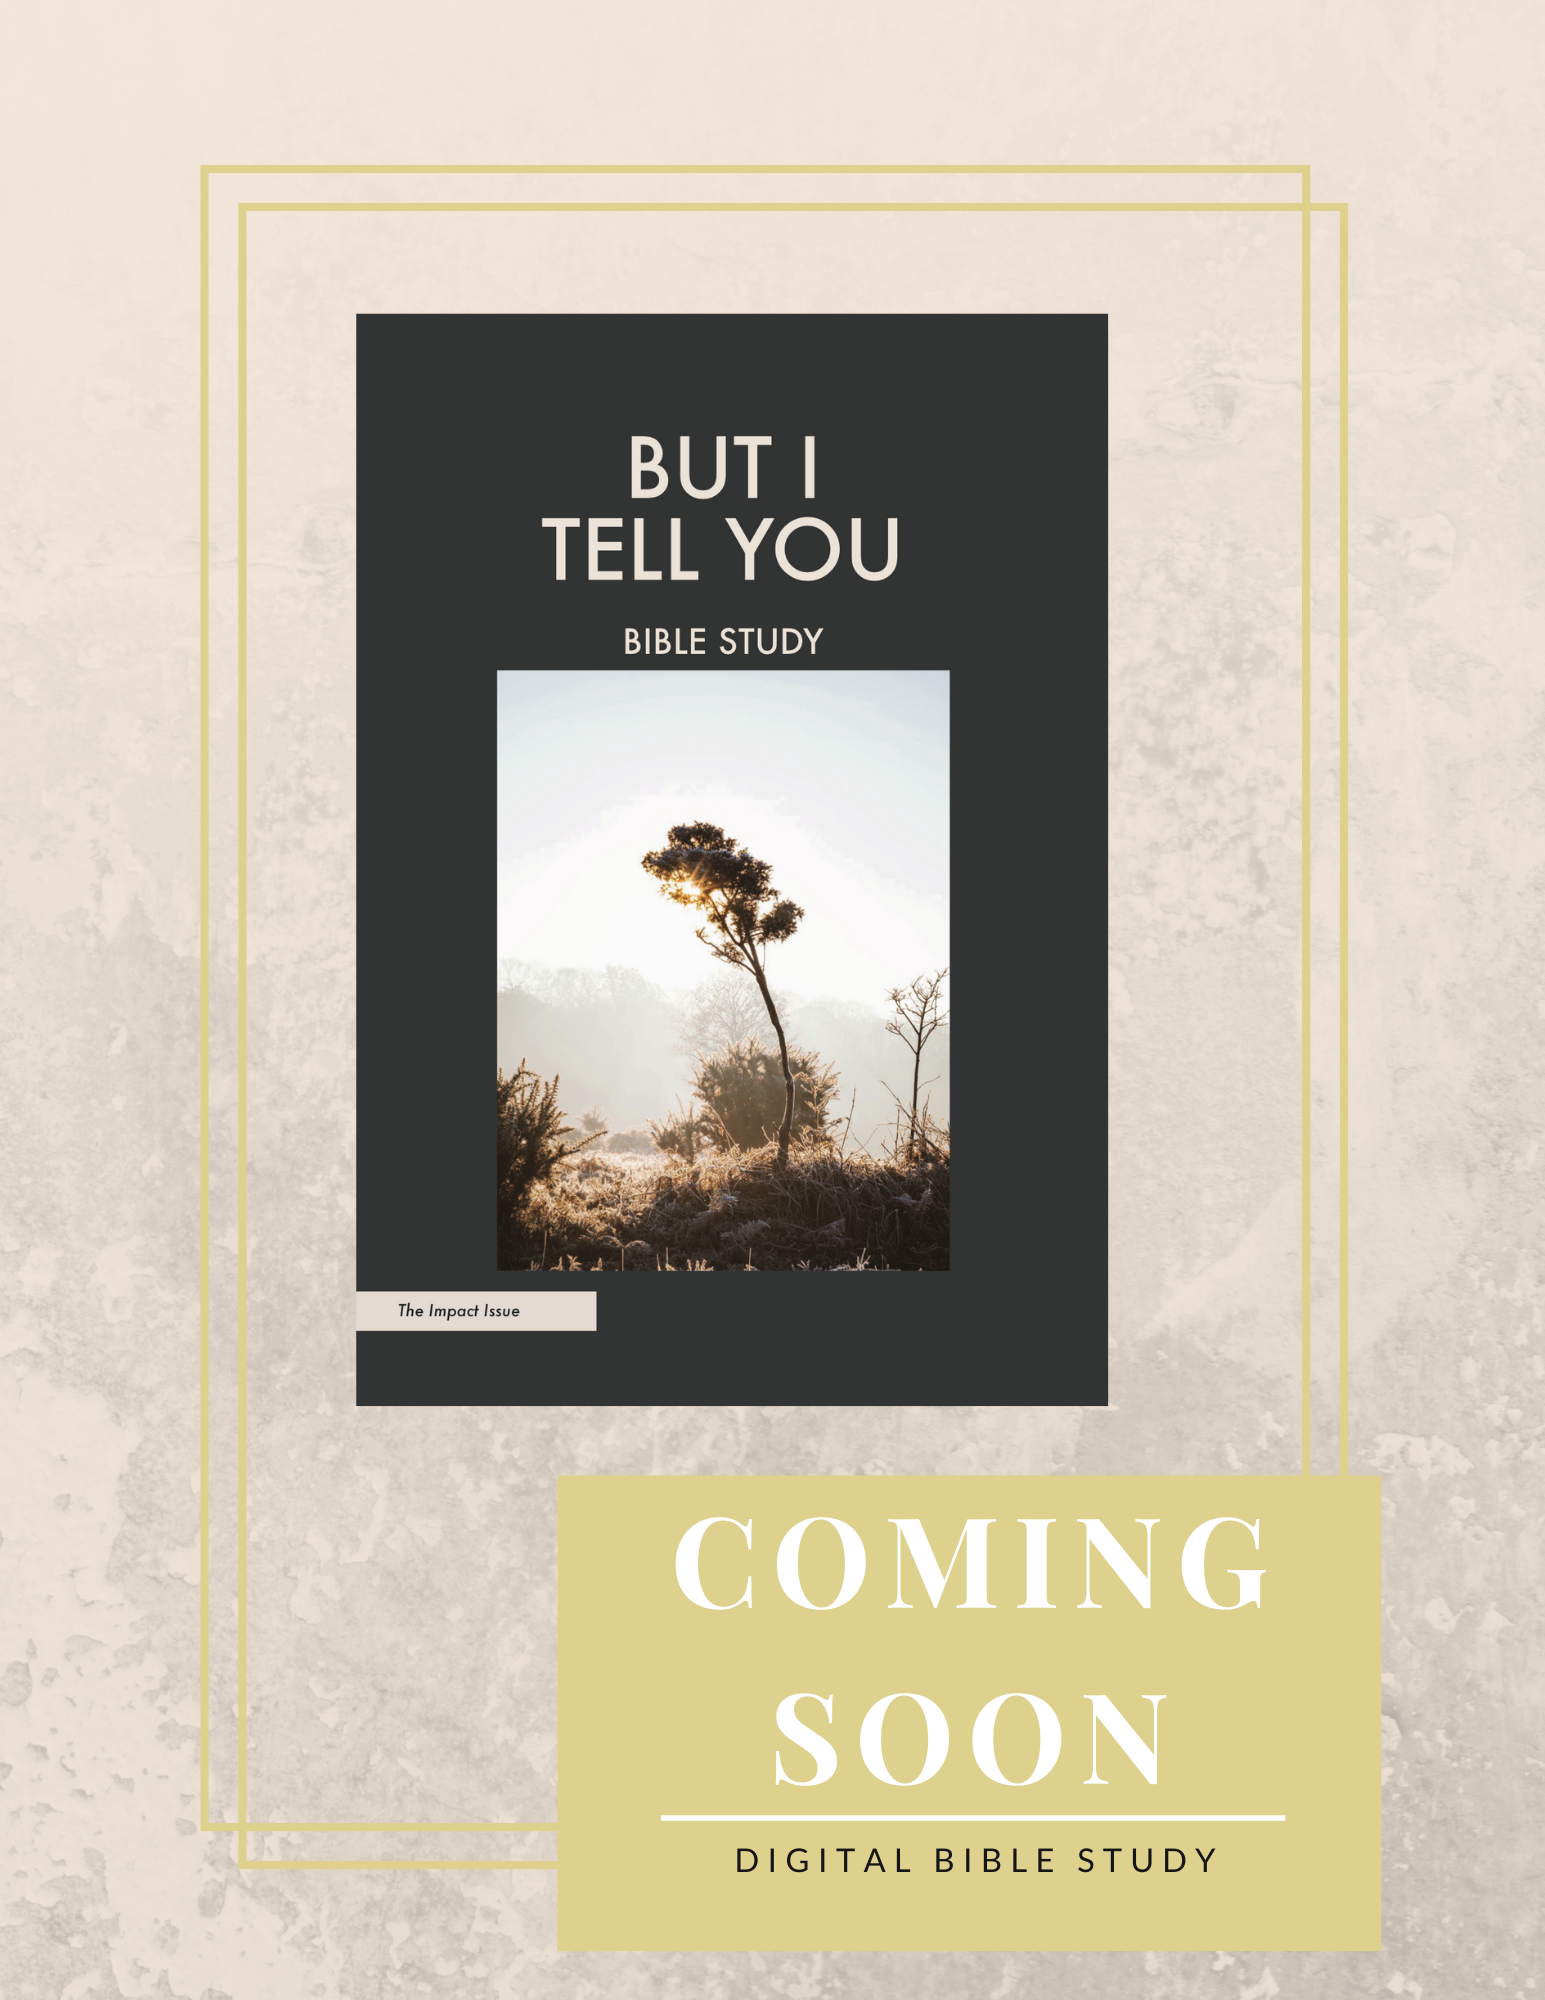 Coming Soon Thi New Digital Bible Study But I Tell You Accompanie The Impact Issue And Provide An In Depth Look At Ser Told So Sermon Introduction Of On Mount